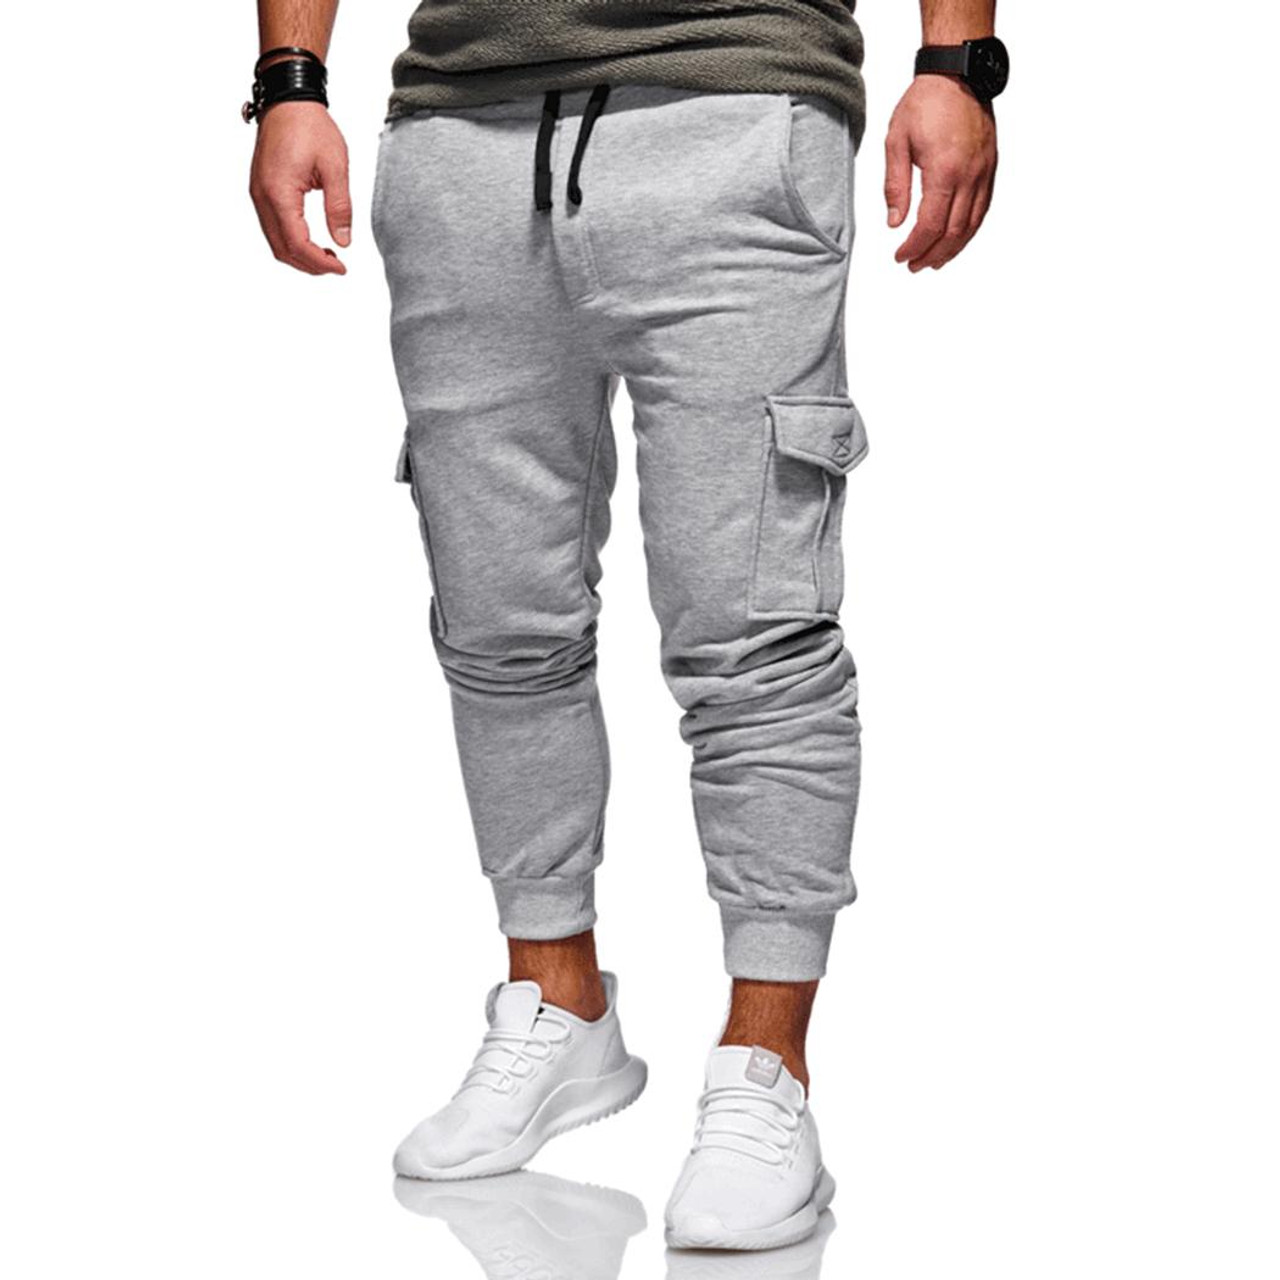 c50c7910e4b ... New 2019 Men Cargo Pants Fashion Tactical Joggers Fitness Workout  Pockets Sweatpants Plus Size 4XL Casual ...